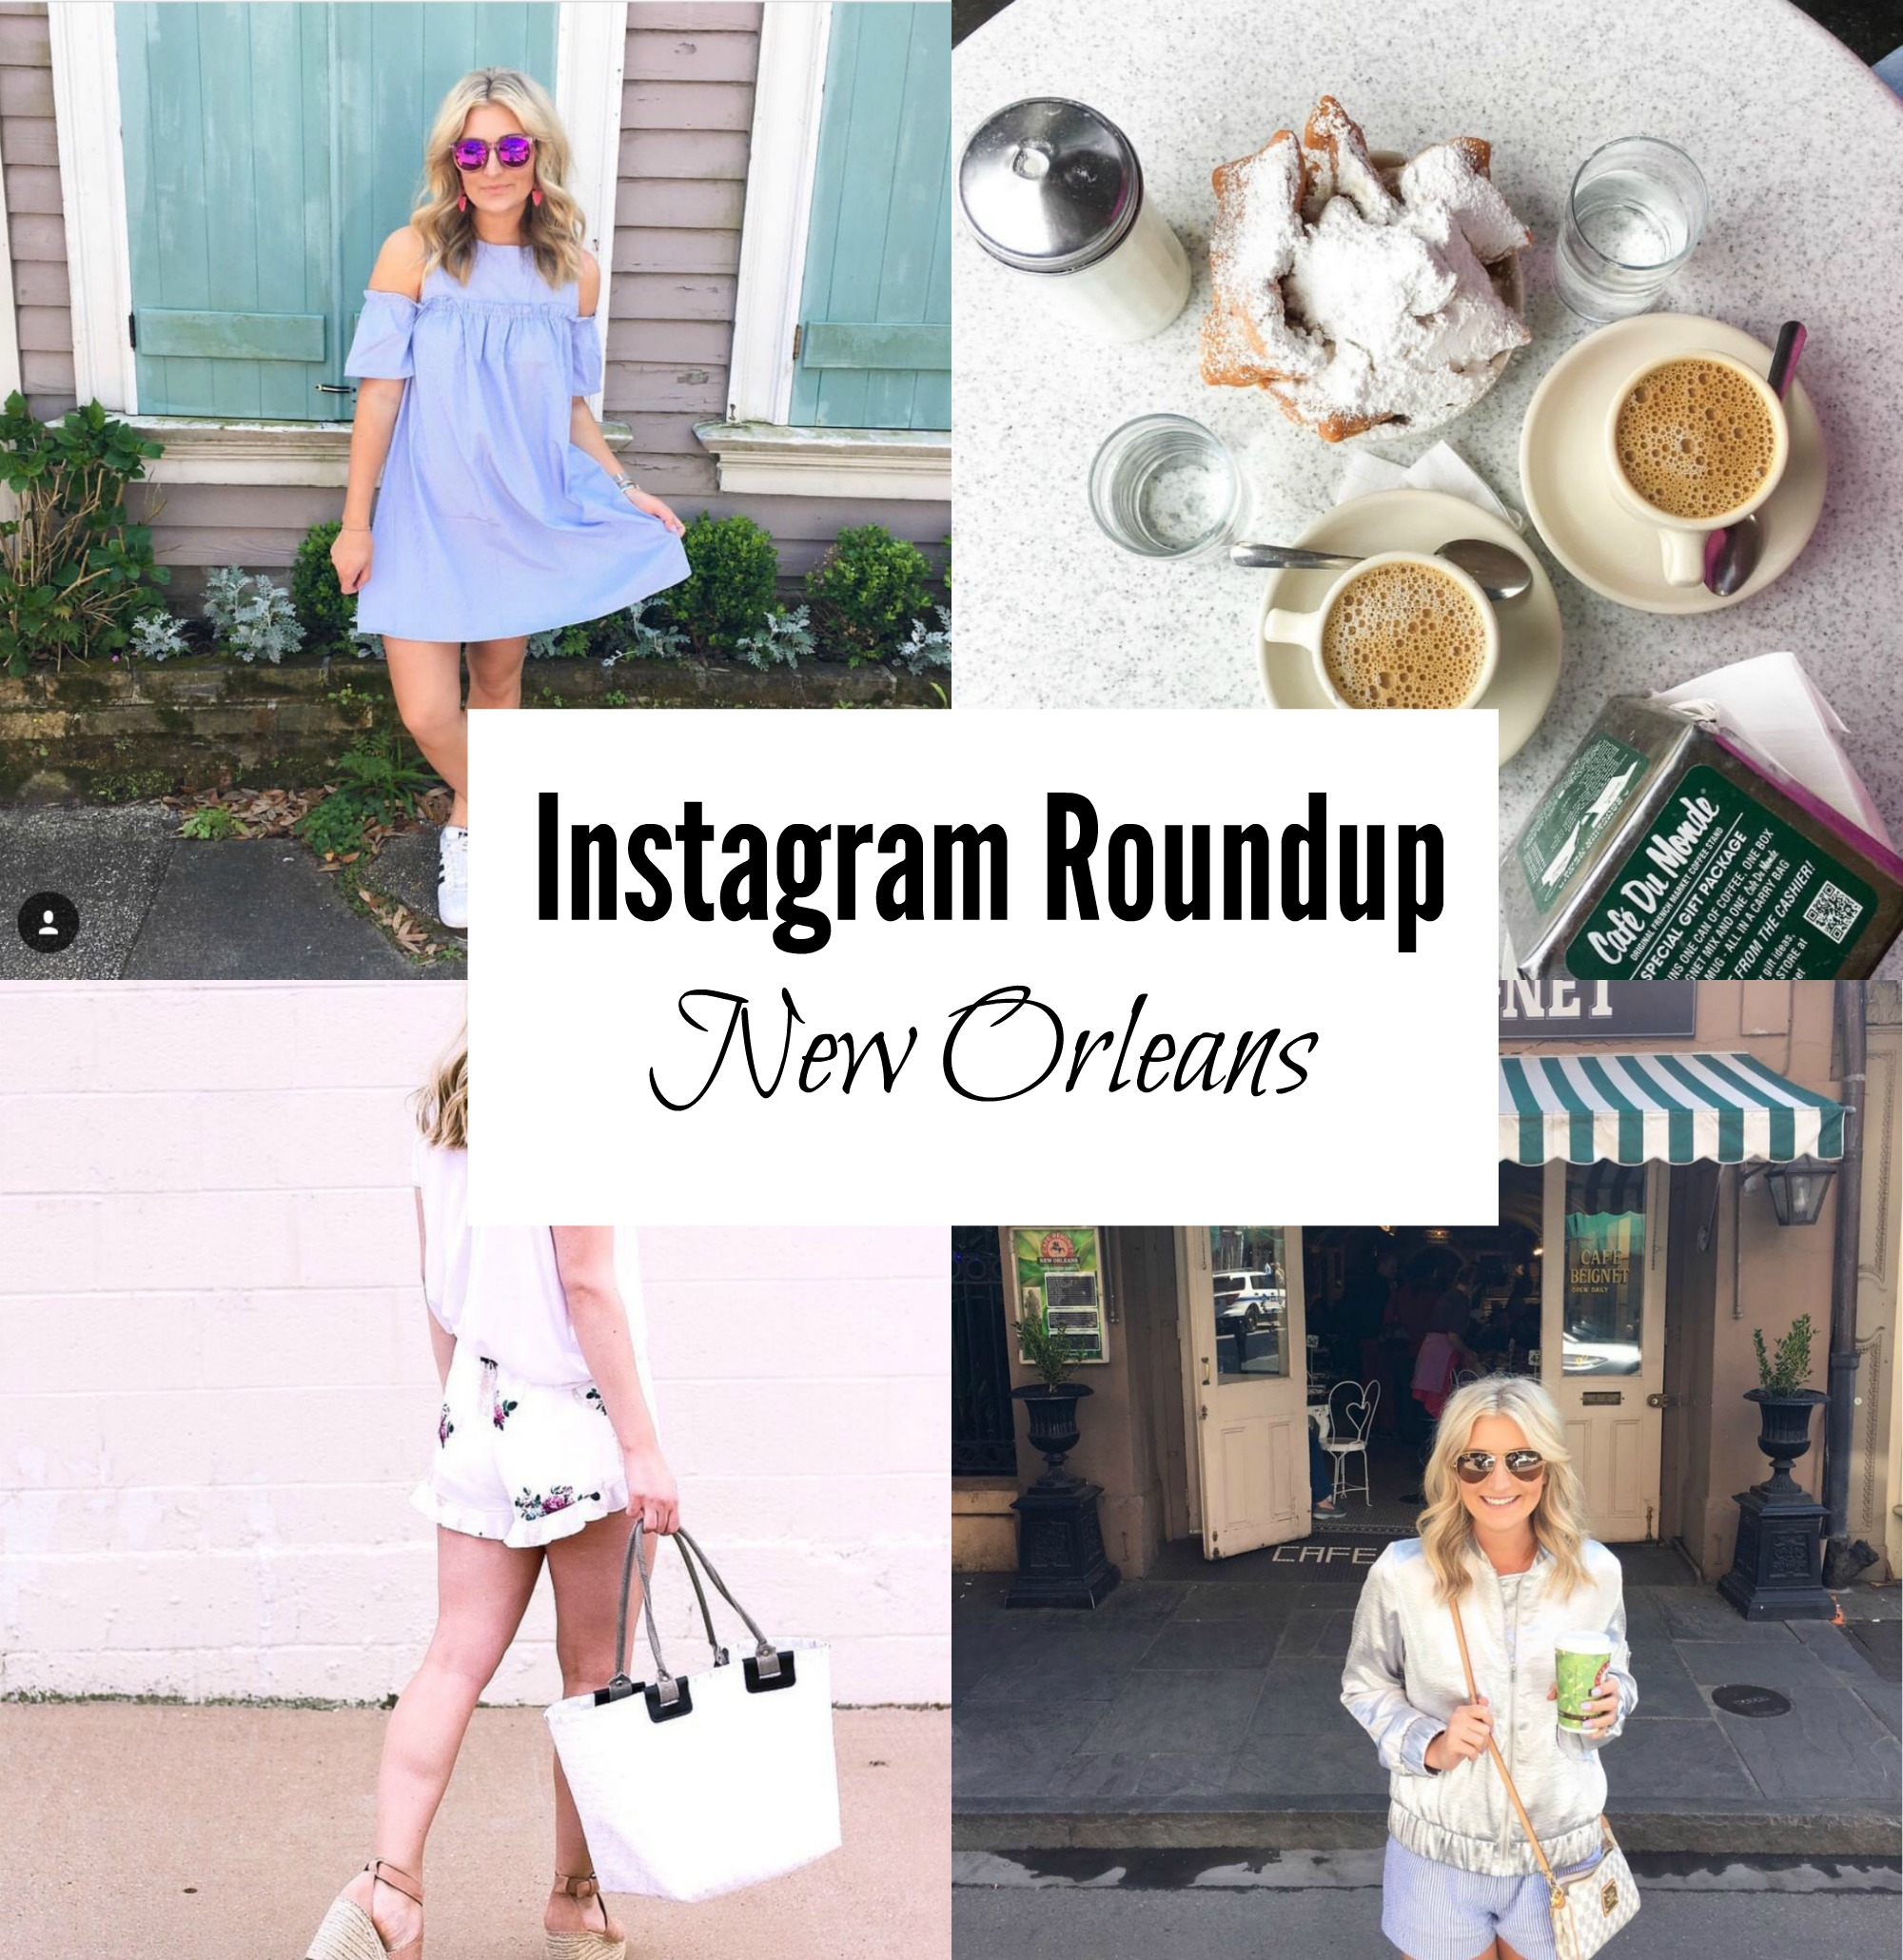 New Orleans Instagram Roundup Spring Break by Audrey Madison Stowe